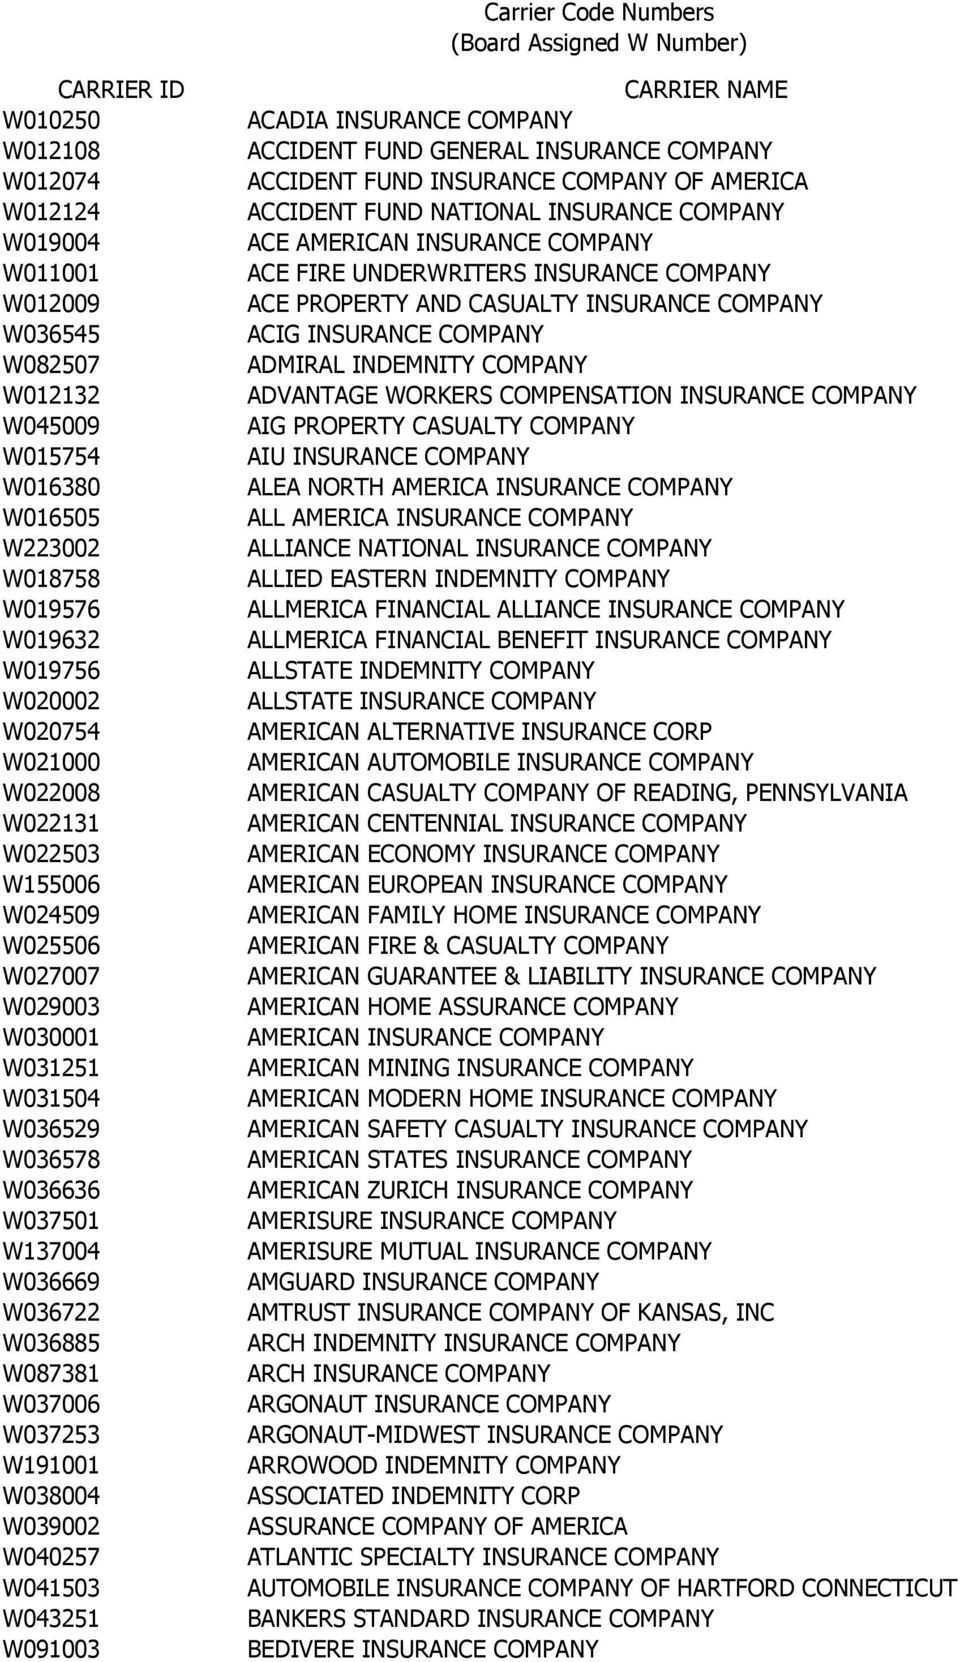 W091003 ACADIA INSURANCE COMPANY ACCIDENT FUND GENERAL INSURANCE COMPANY ACCIDENT FUND INSURANCE COMPANY OF AMERICA ACCIDENT FUND NATIONAL INSURANCE COMPANY ACE AMERICAN INSURANCE COMPANY ACE FIRE